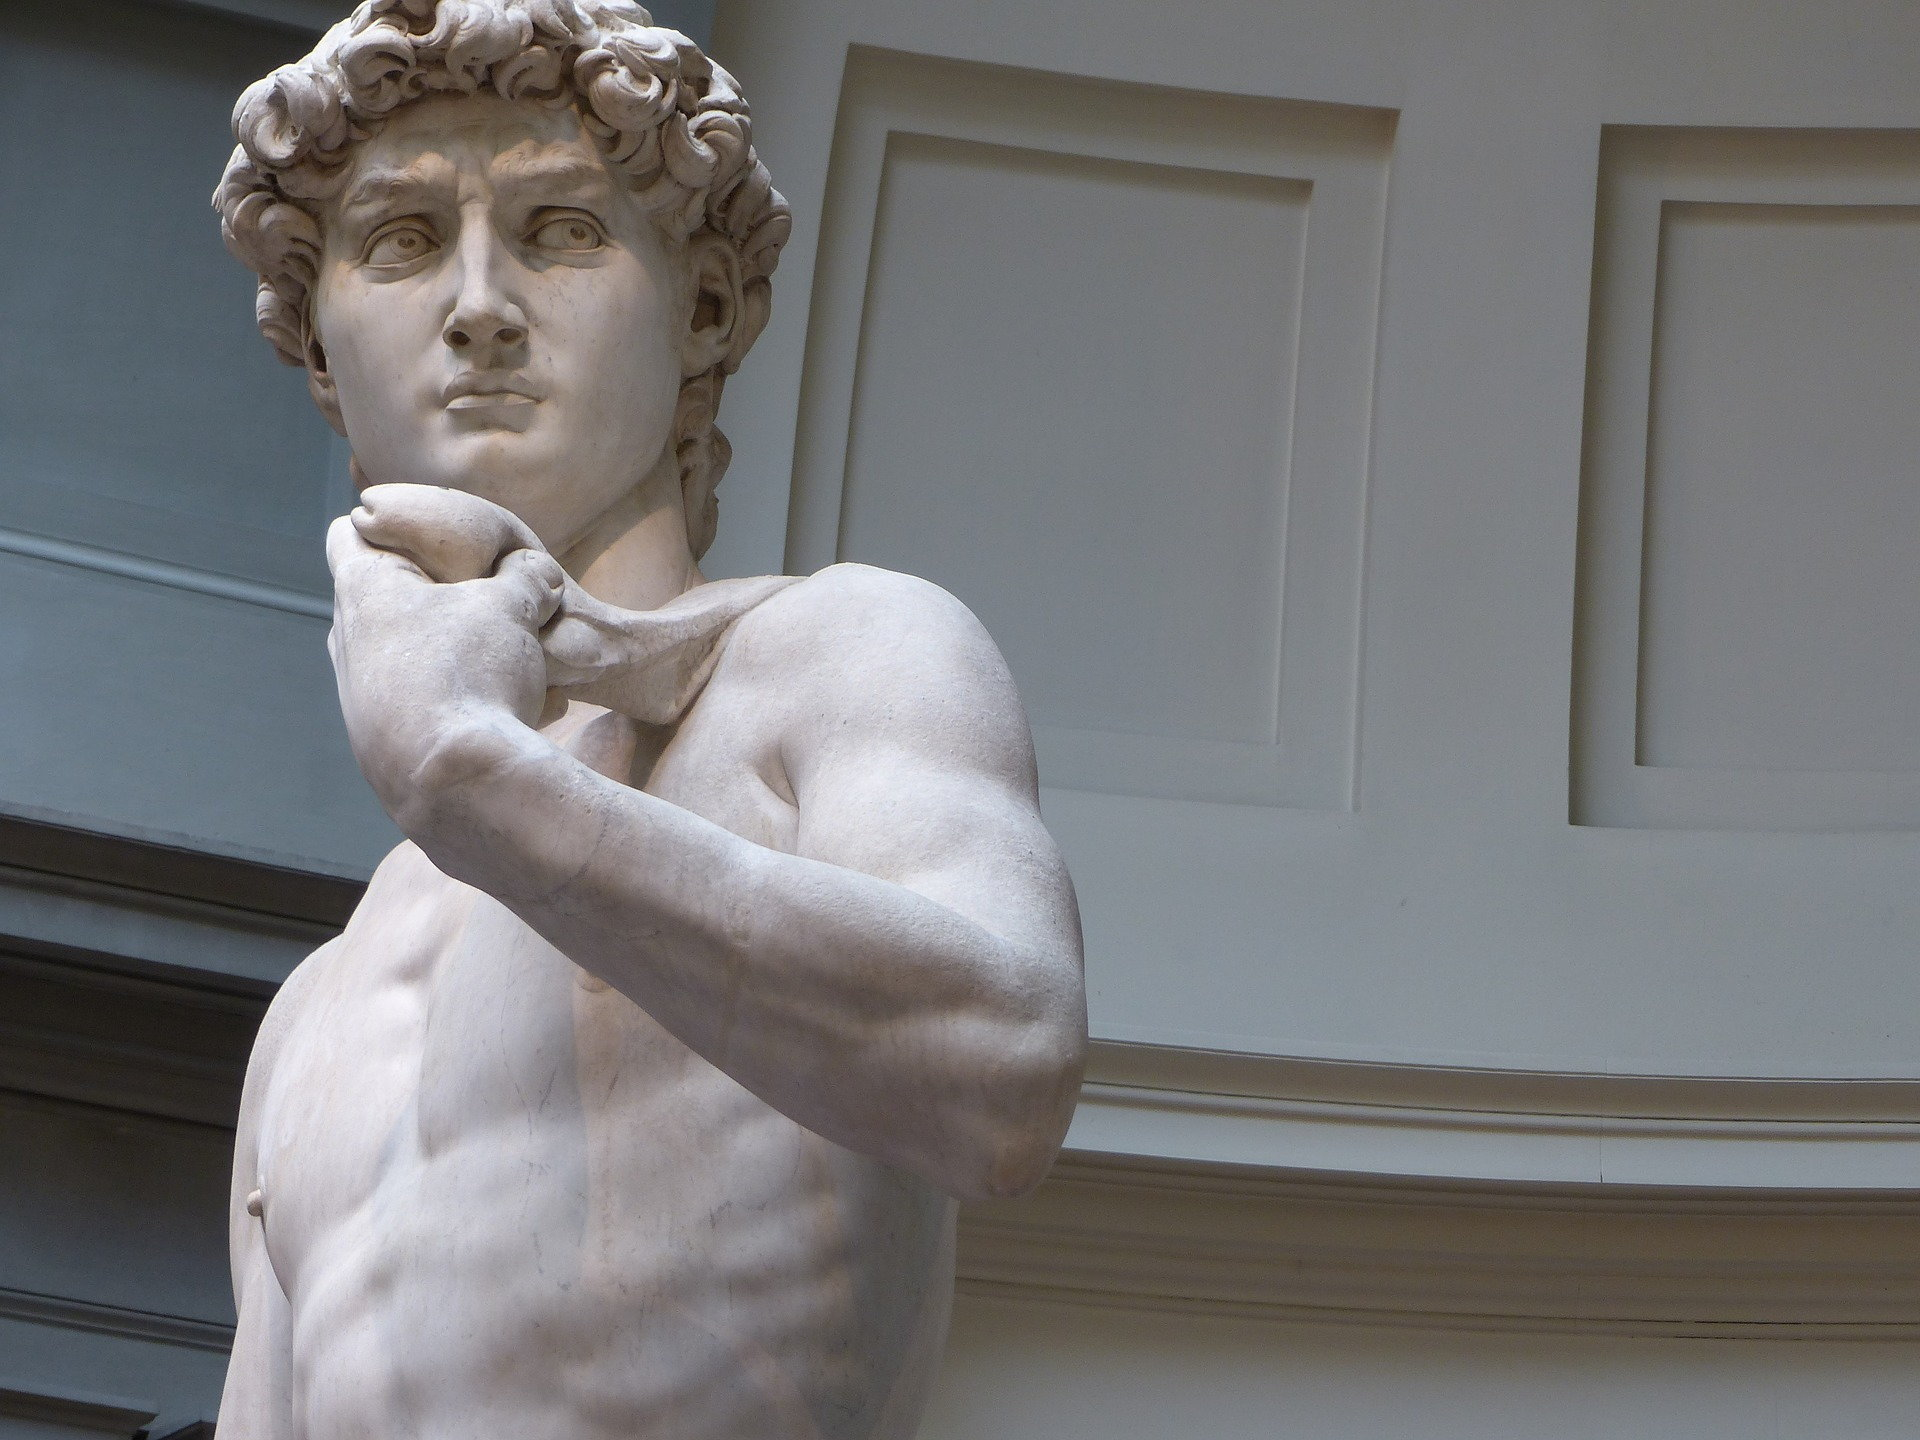 Close-up of Renaissance artist Michelangelo's timeless